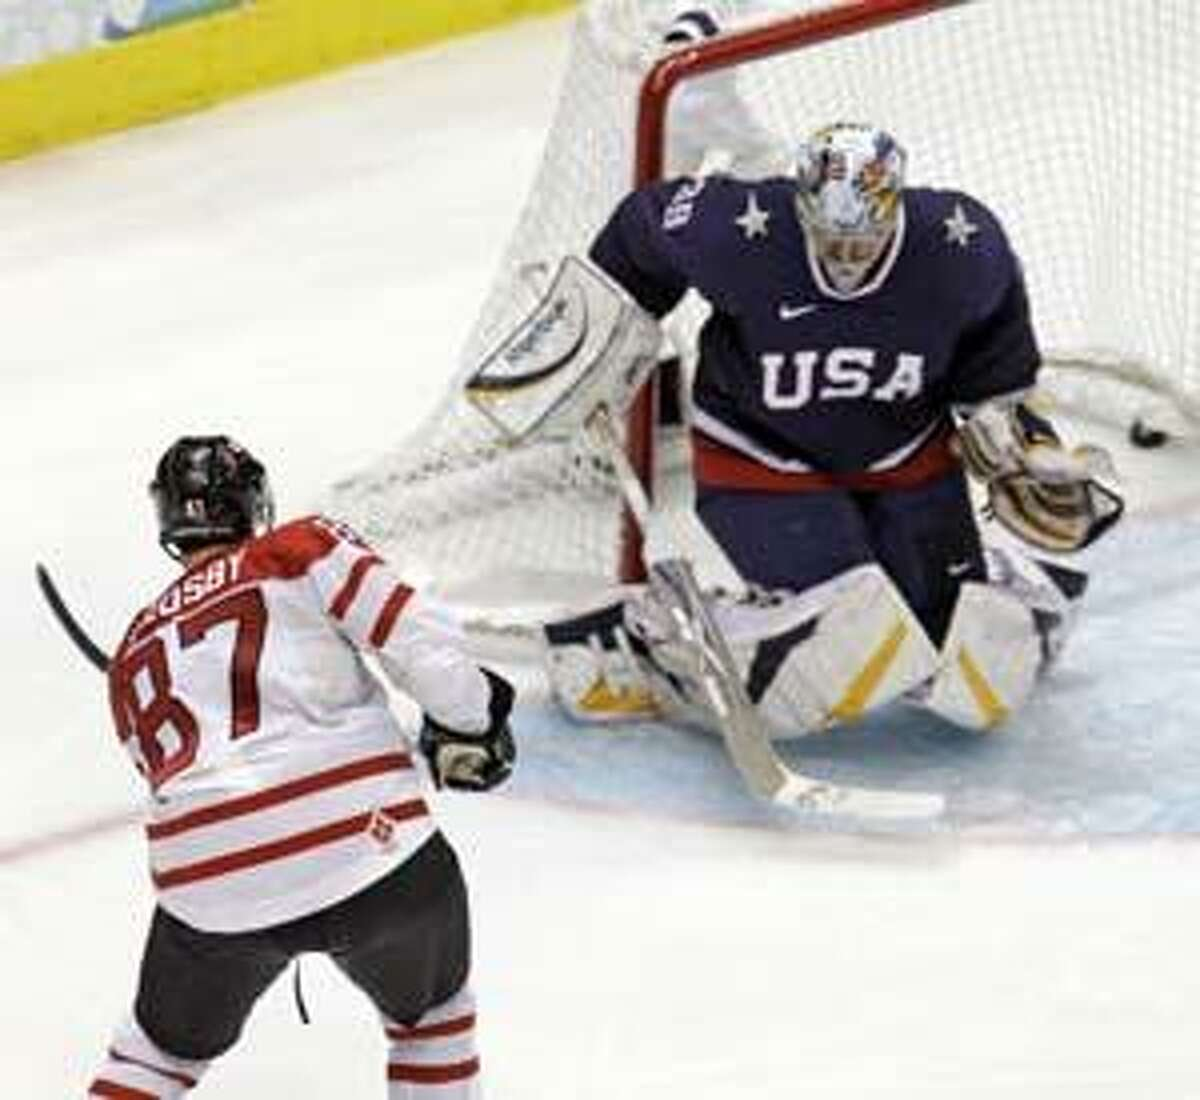 AP Canada's Sidney Crosby (87) shoots past U.S.A. goalie Ryan Miller (39) for the game-winning goal in overtime of the men's gold medal ice hockey game at the Vancouver 2010 Olympics in Vancouver, British Columbia, Sunday.